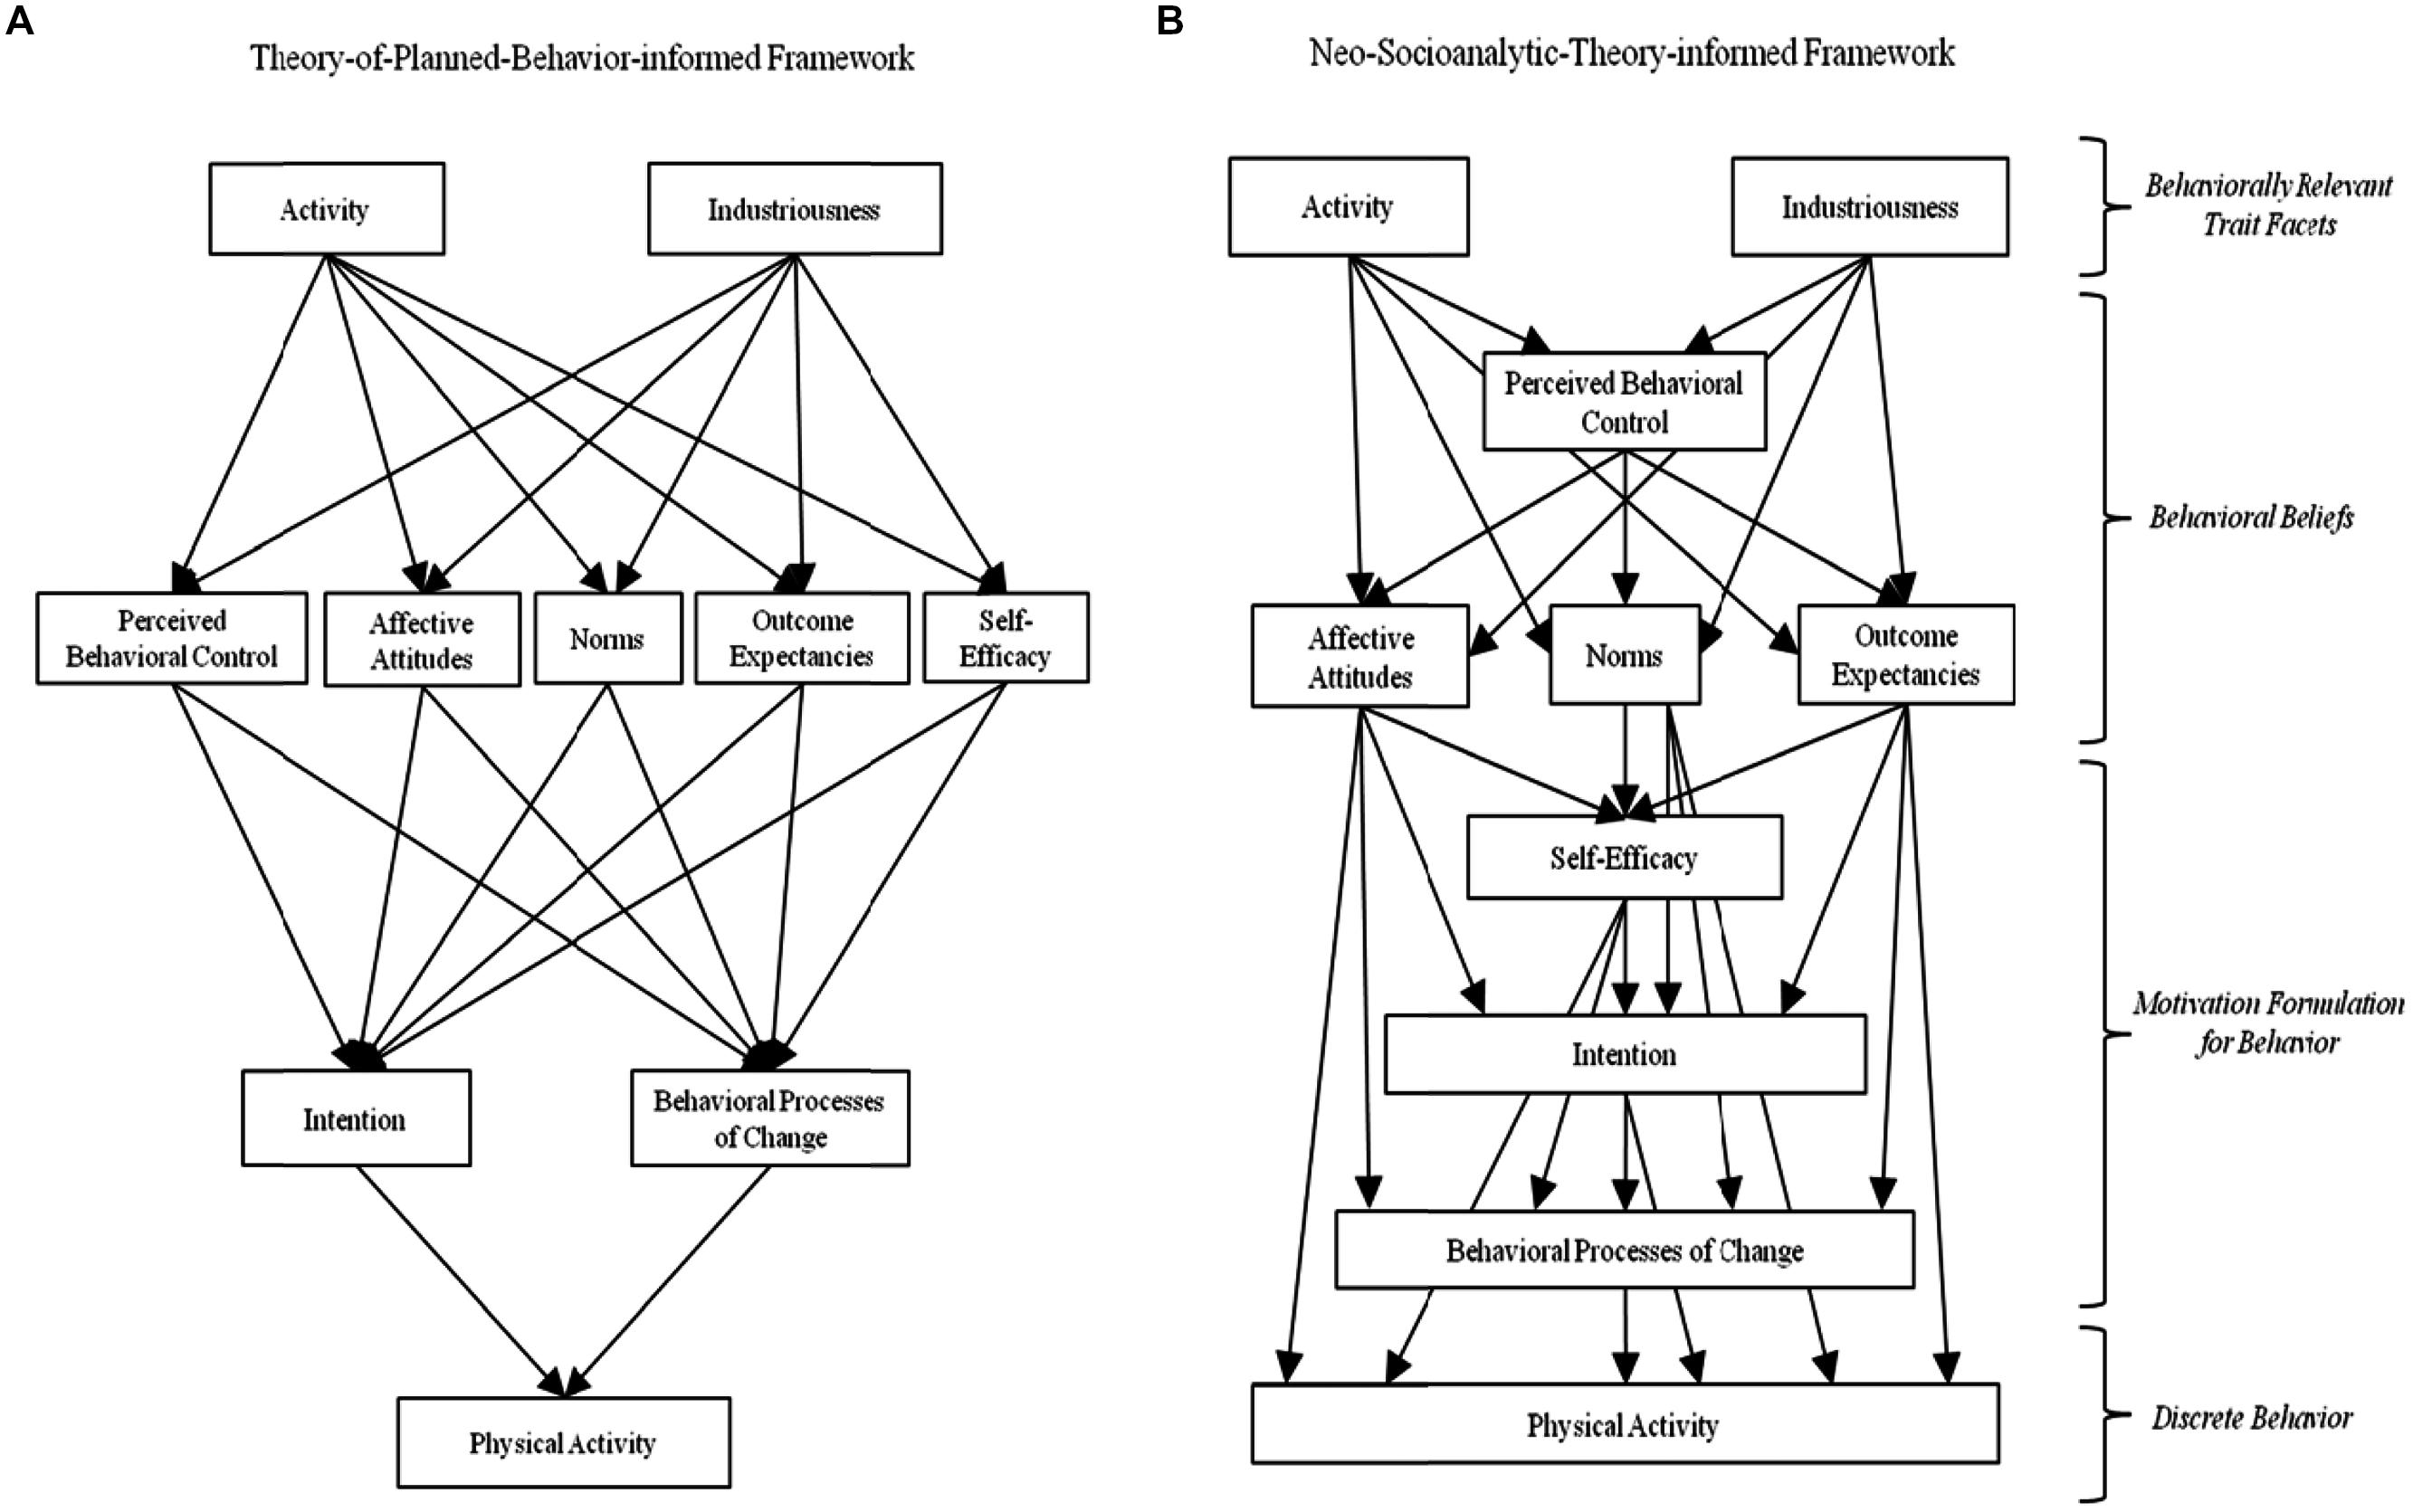 Frontiers Testing Theory Of Planned Behavior And Neo Socioanalytic